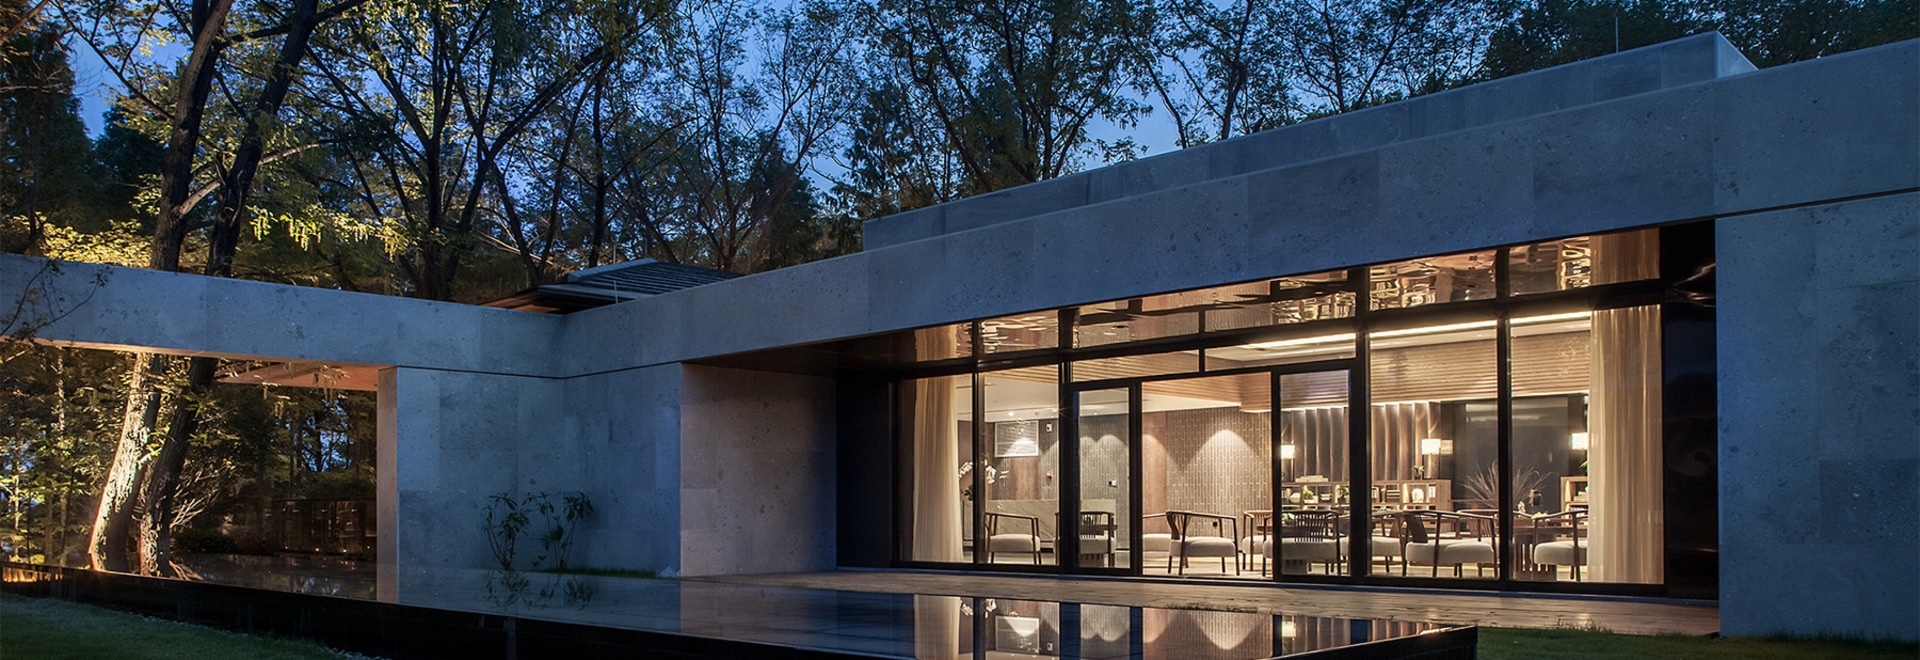 CL3u0027s tea house in china uses wood